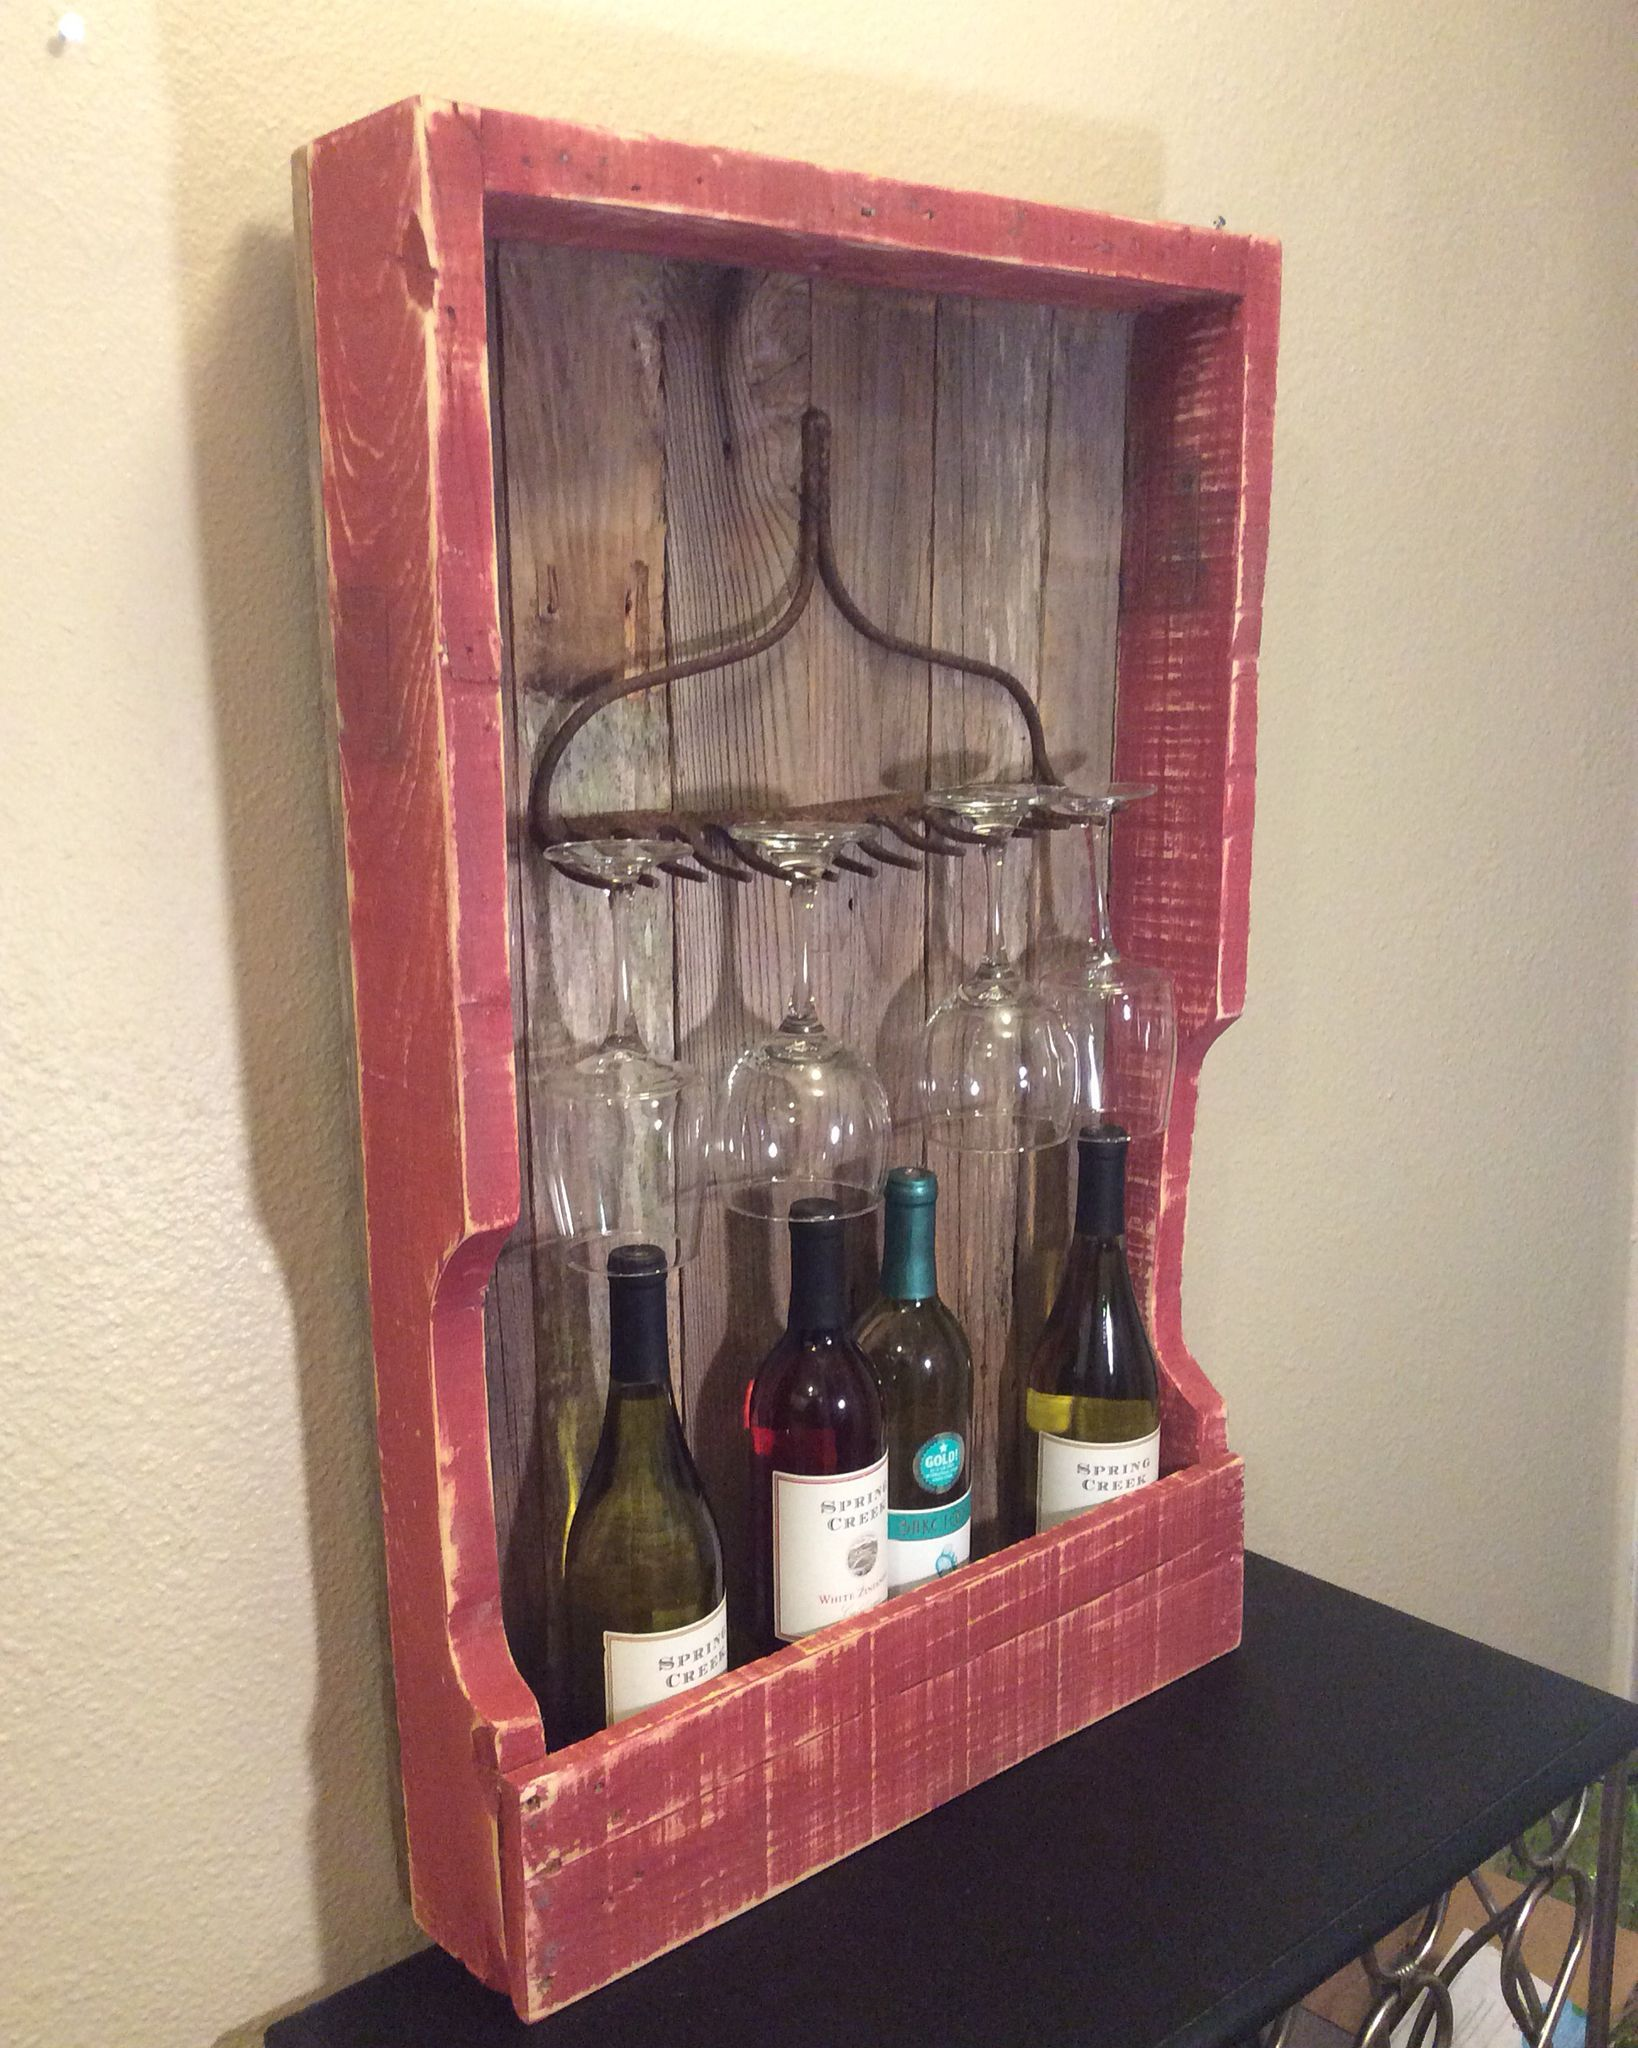 Rustic Wine Rack From Pallet Wood And Fence Pickets With Rusty Rake Head 115 On Etsy Shipping Included Wood Wine Racks Rustic Wine Racks Pallet Wine Rack